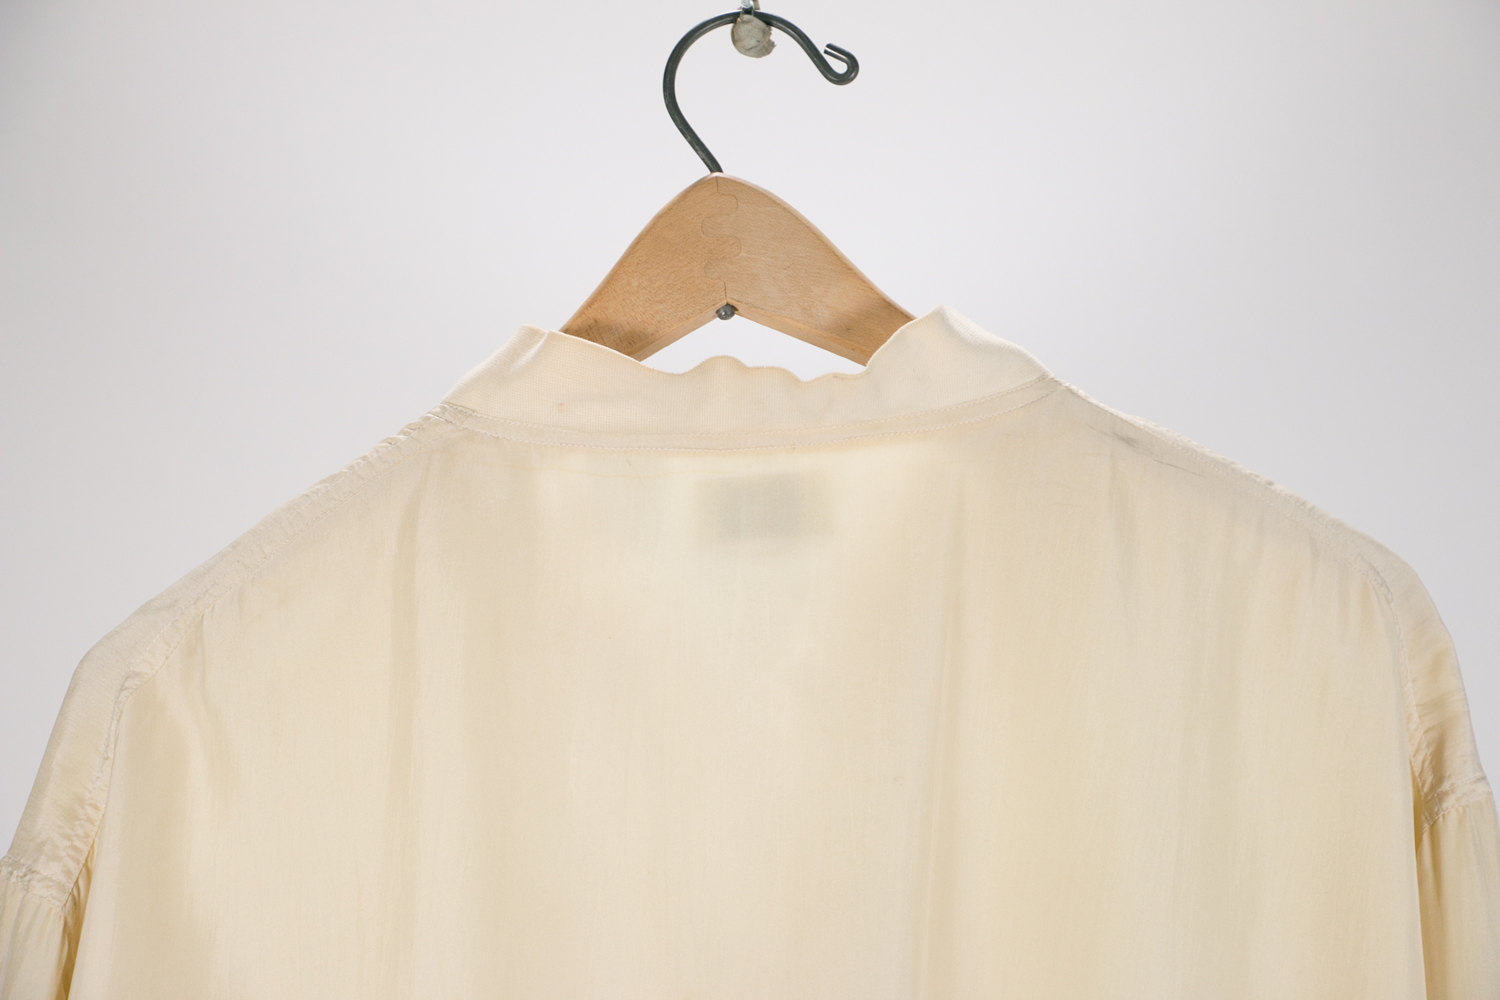 Vintage 1980's White / Cream Silk Jacket - Sarah Roberts - Women's Size Small - Eccentric, New Wave, Hipster